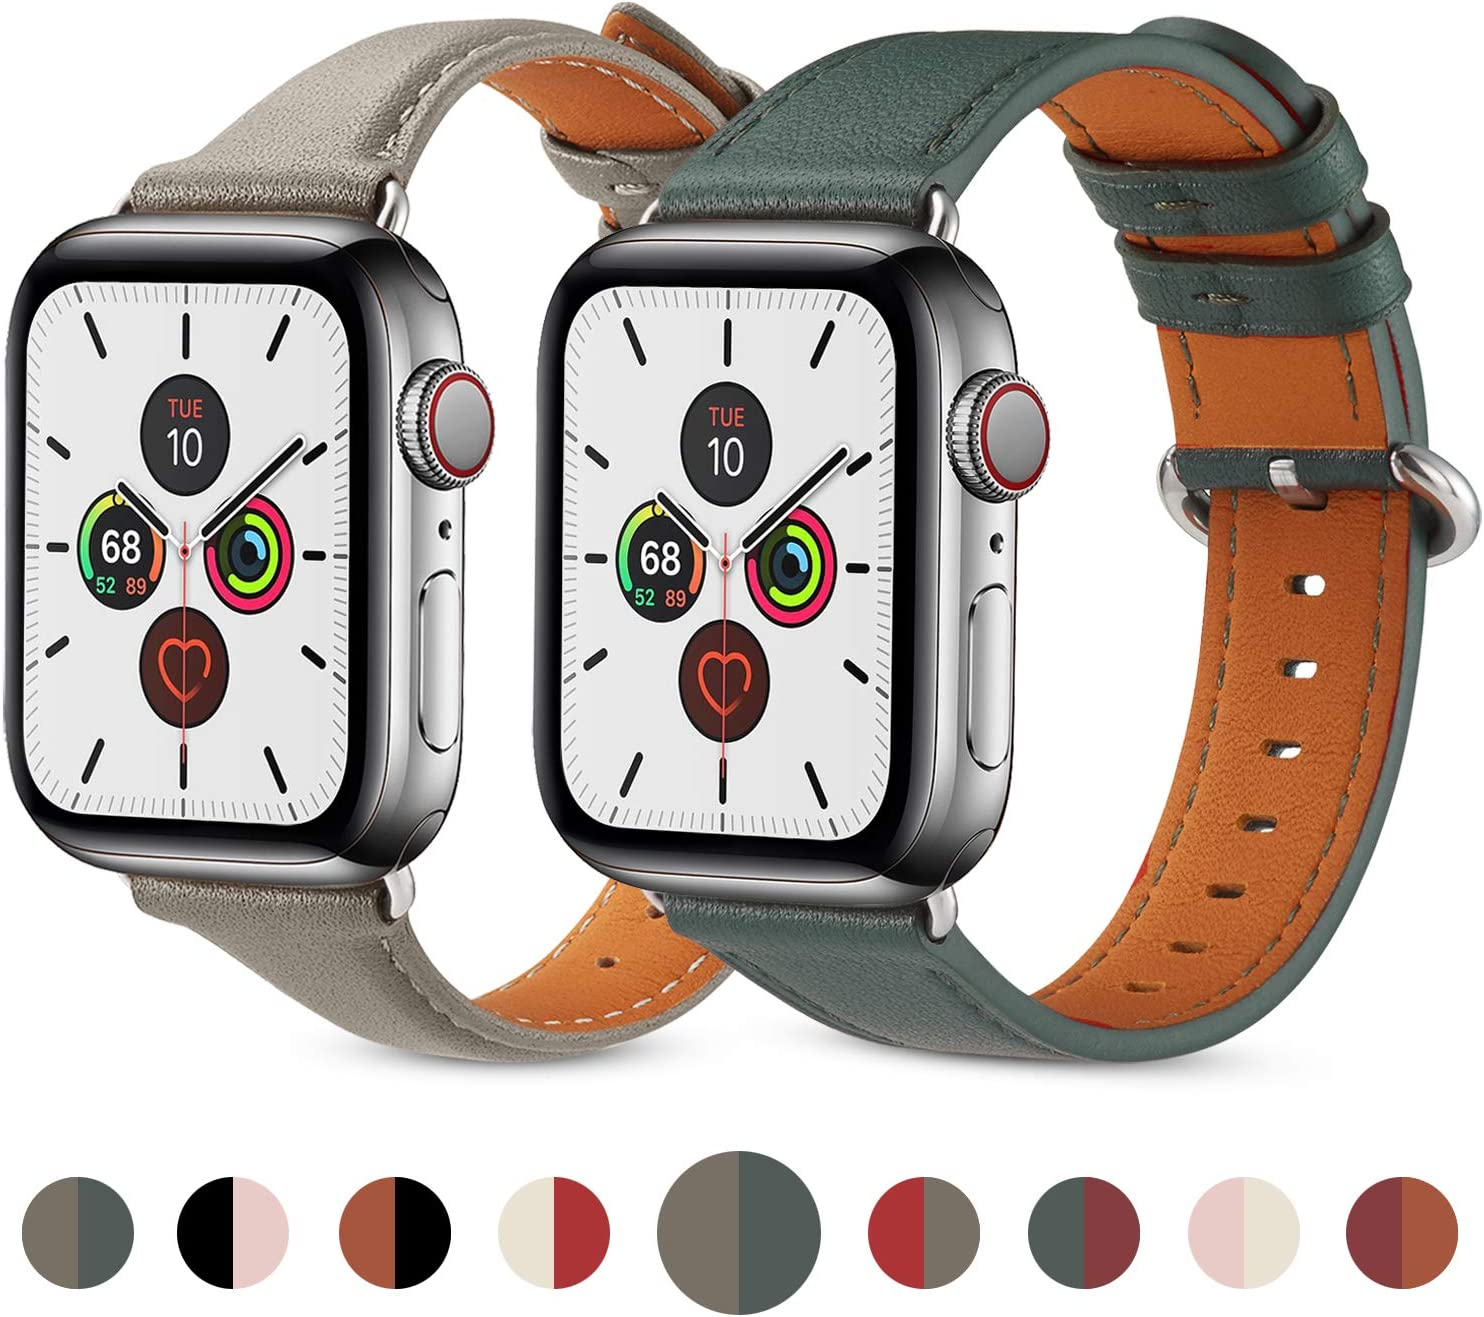 (2PACK) Pierre Case Leather Compatible with Apple Watch Band 38mm 40mm, Genuine Leather Band Slim & Thin Wristband for iWatch Series 6/5/4/3/2/1 (Midnight Blue&Grey, 38mm/40mm)